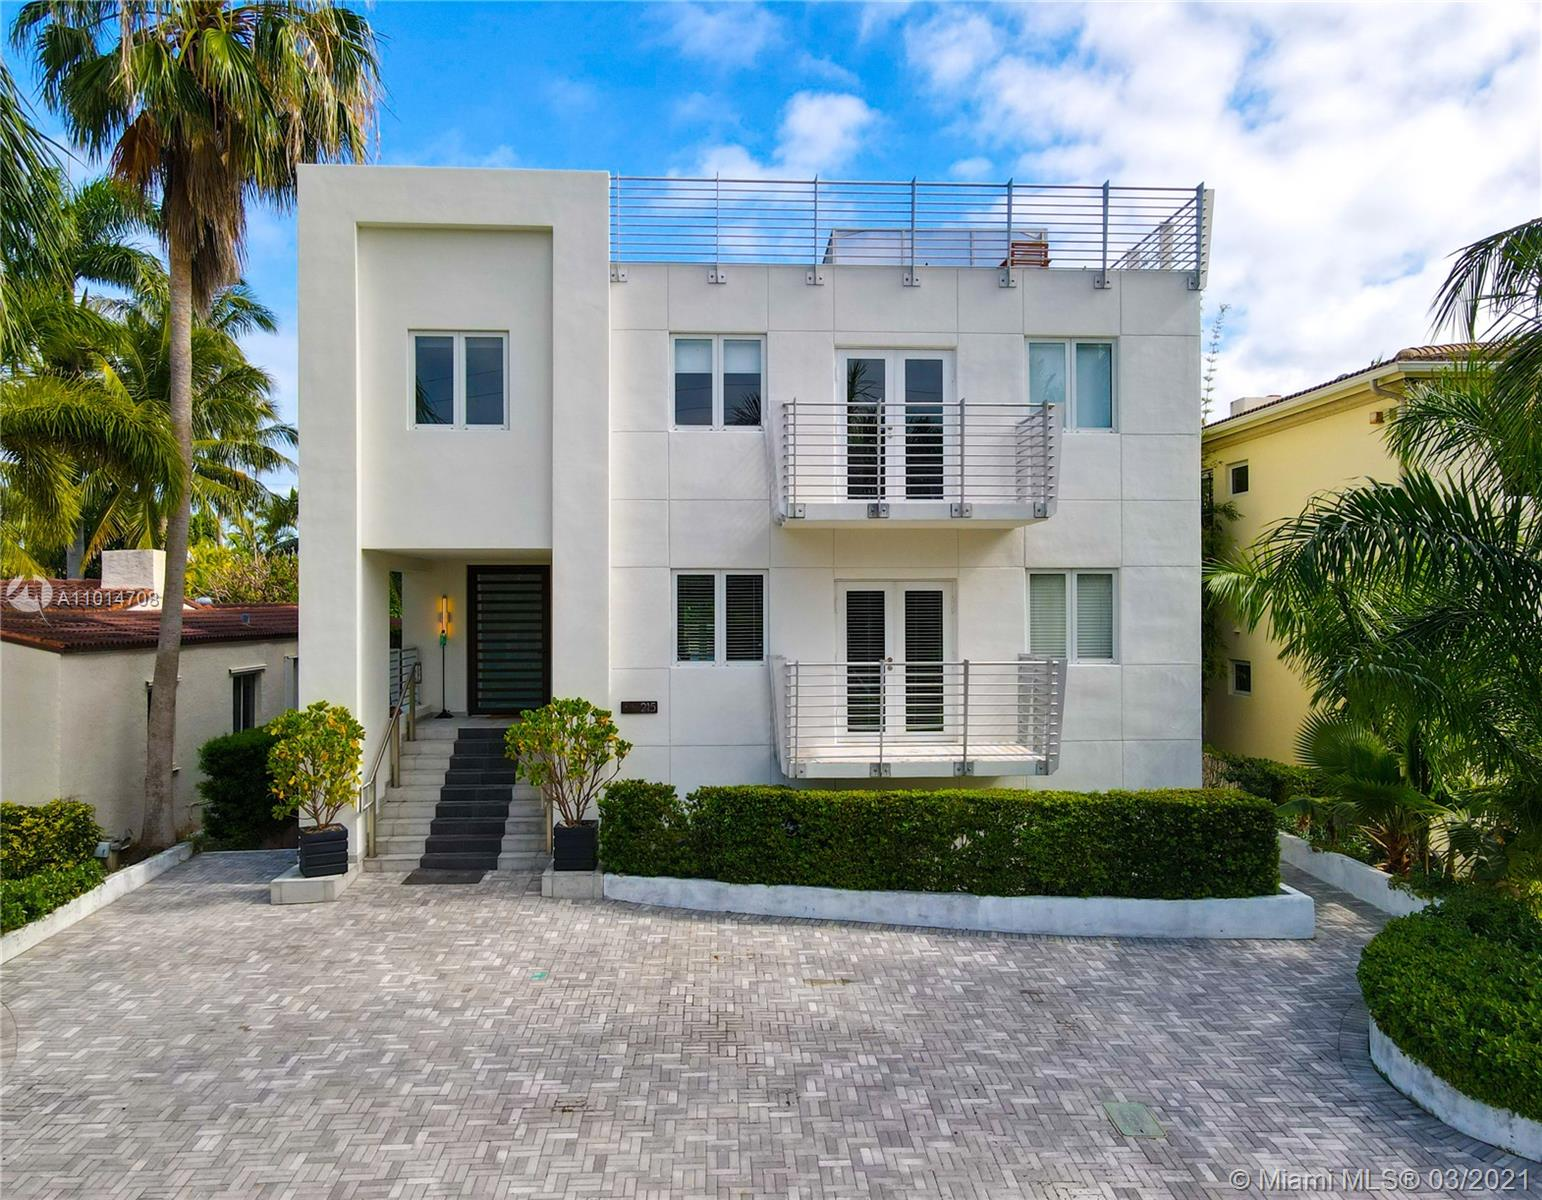 Palm Island - 215 Palm Ave, Miami Beach, FL 33139